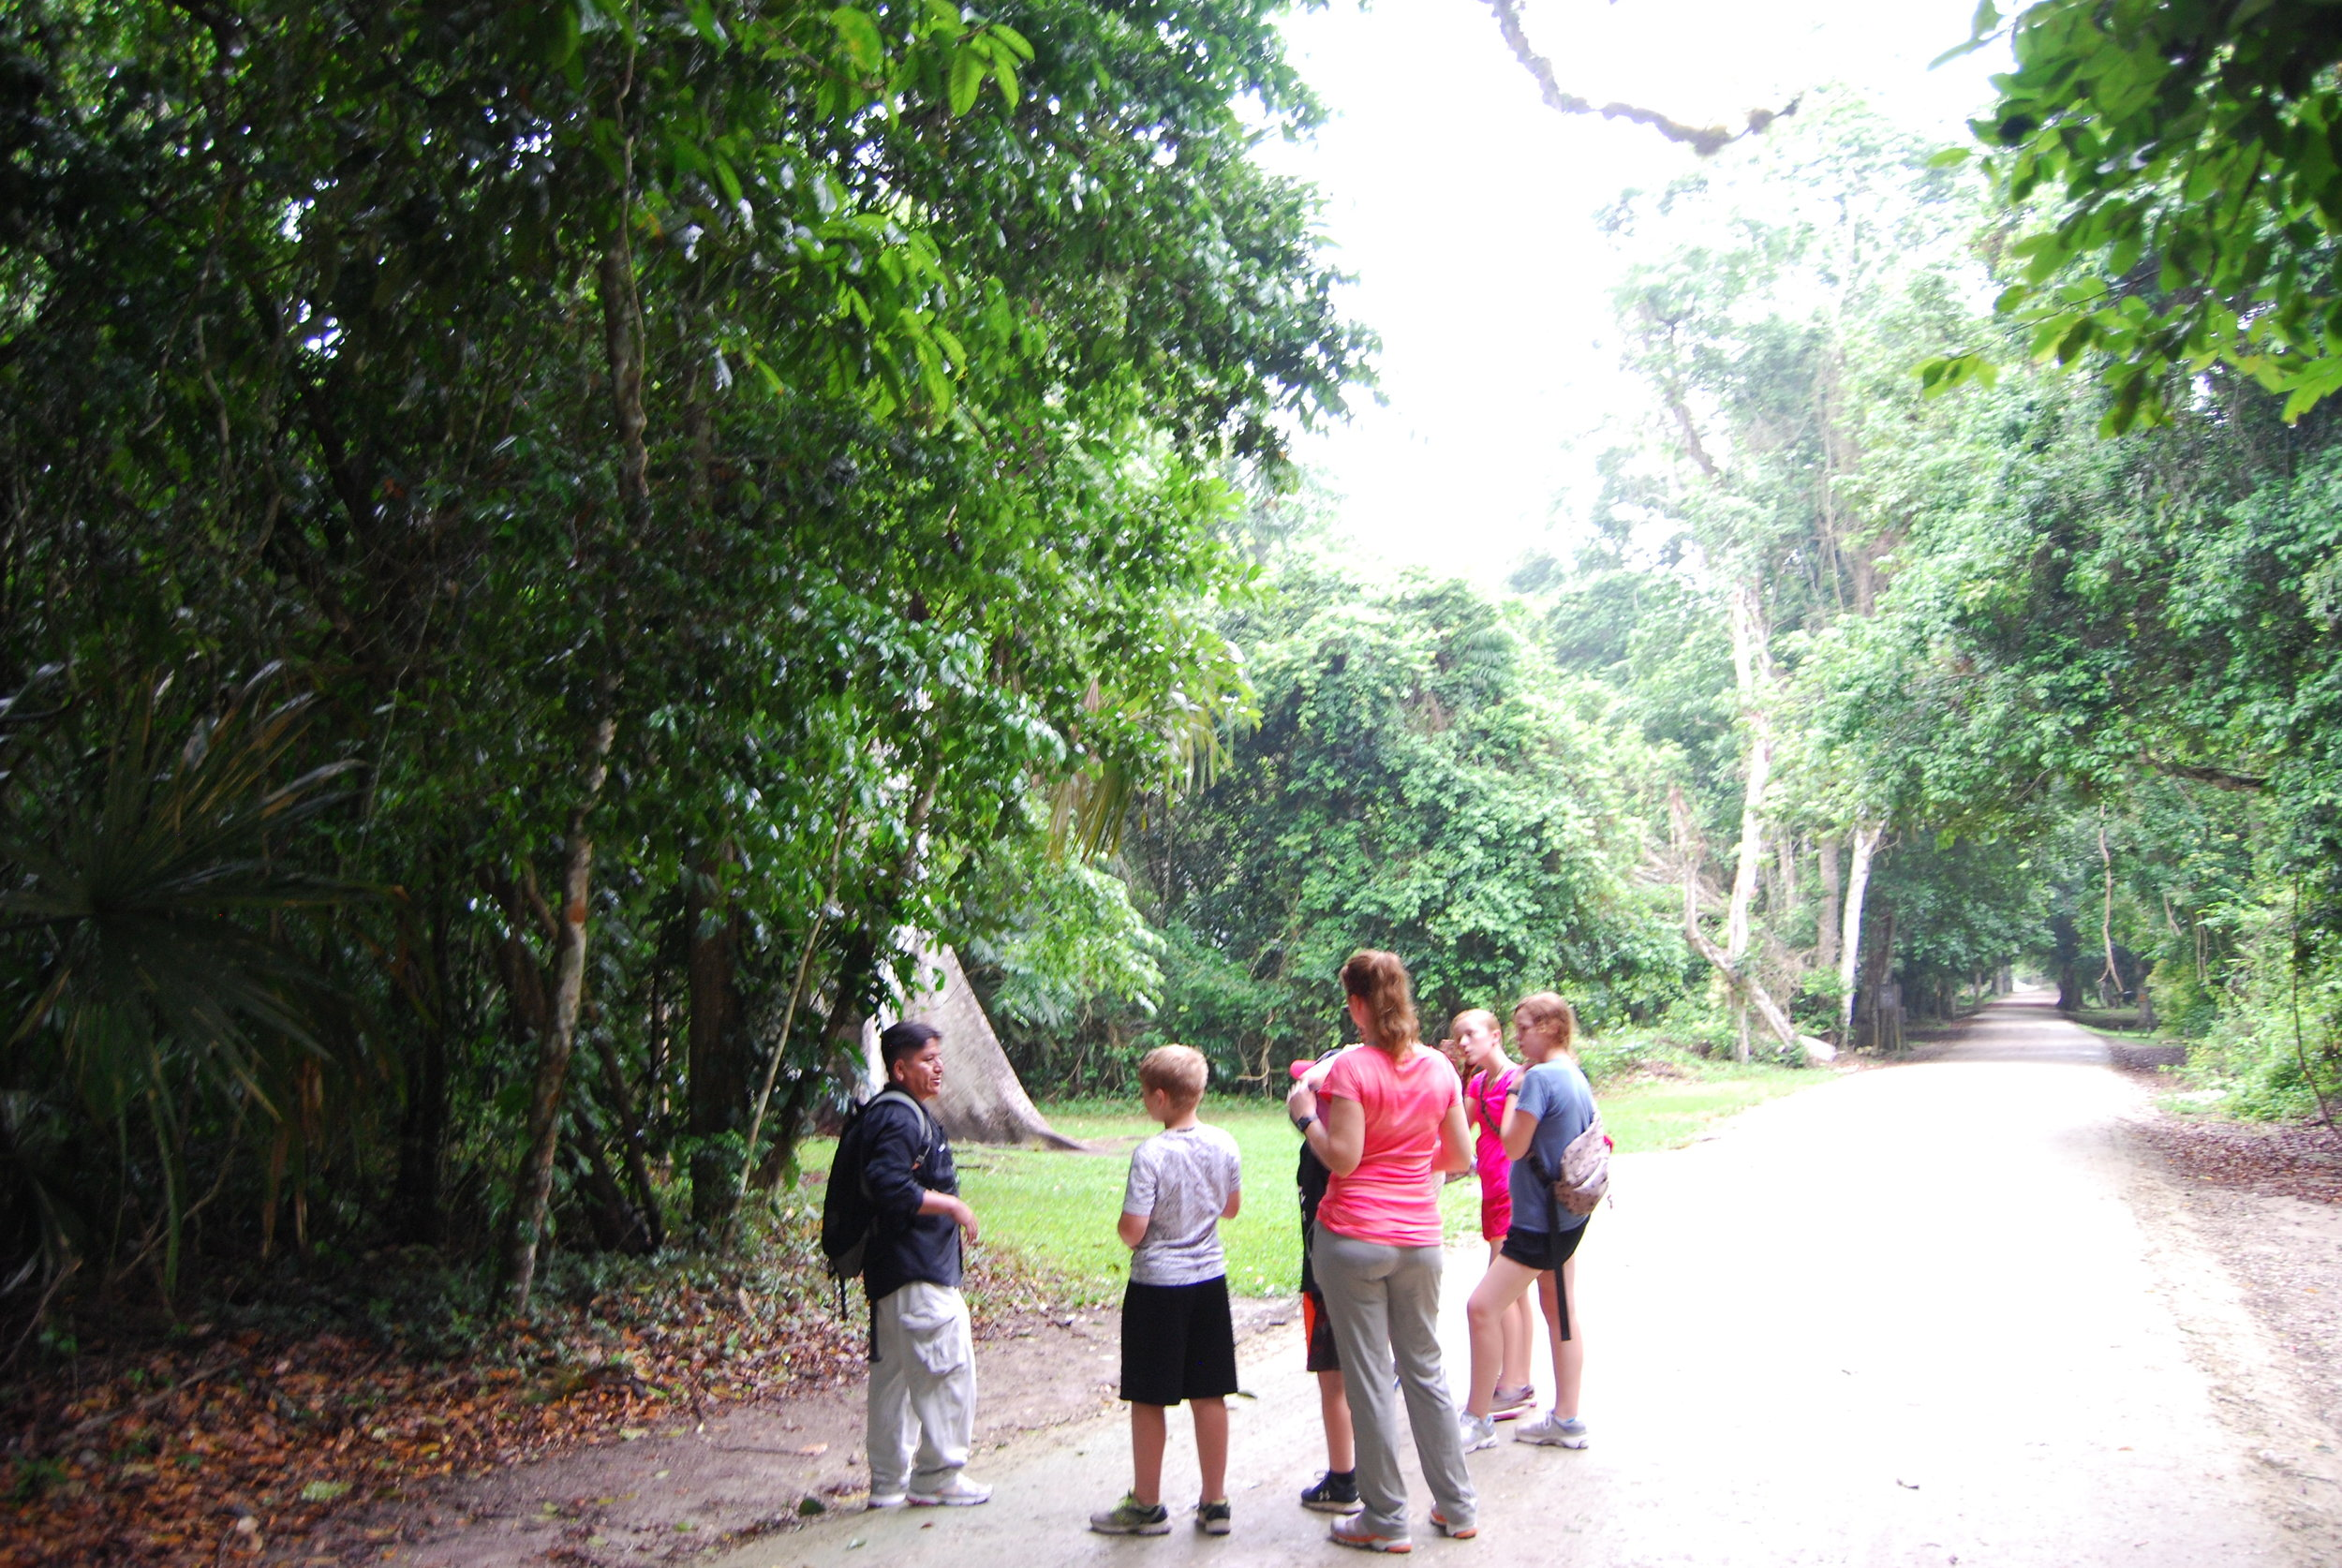 The family listing intently to our guide explaining the importance of the ceiba tree to the Mayans.